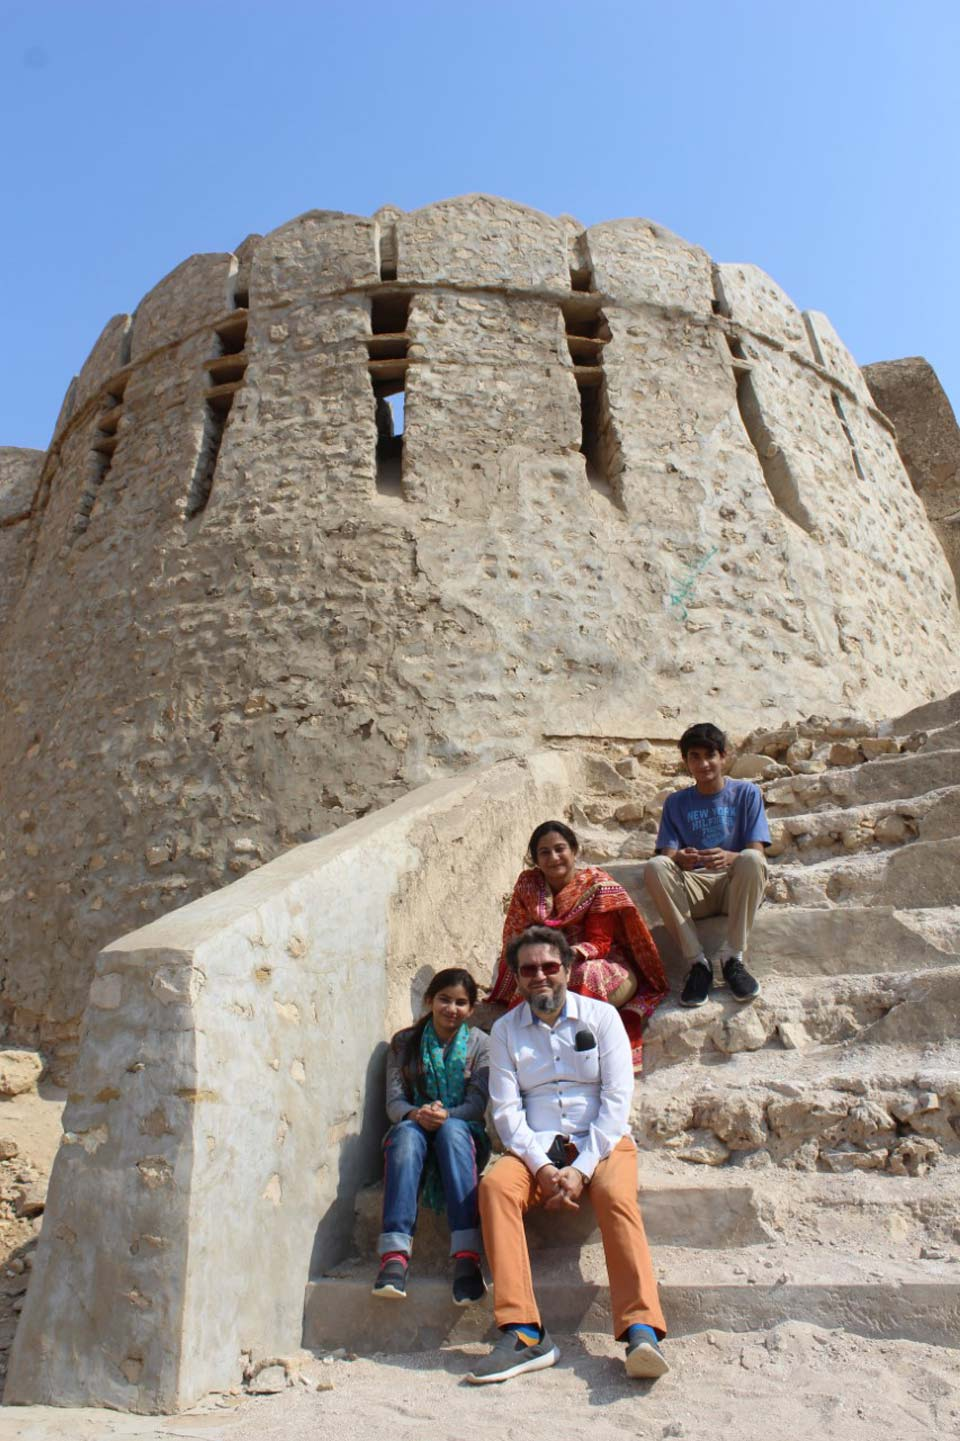 A family from our group relaxing on the stairs after visiting one of the guard room at the Great Wall of Sindh @ Rani Kot Fort